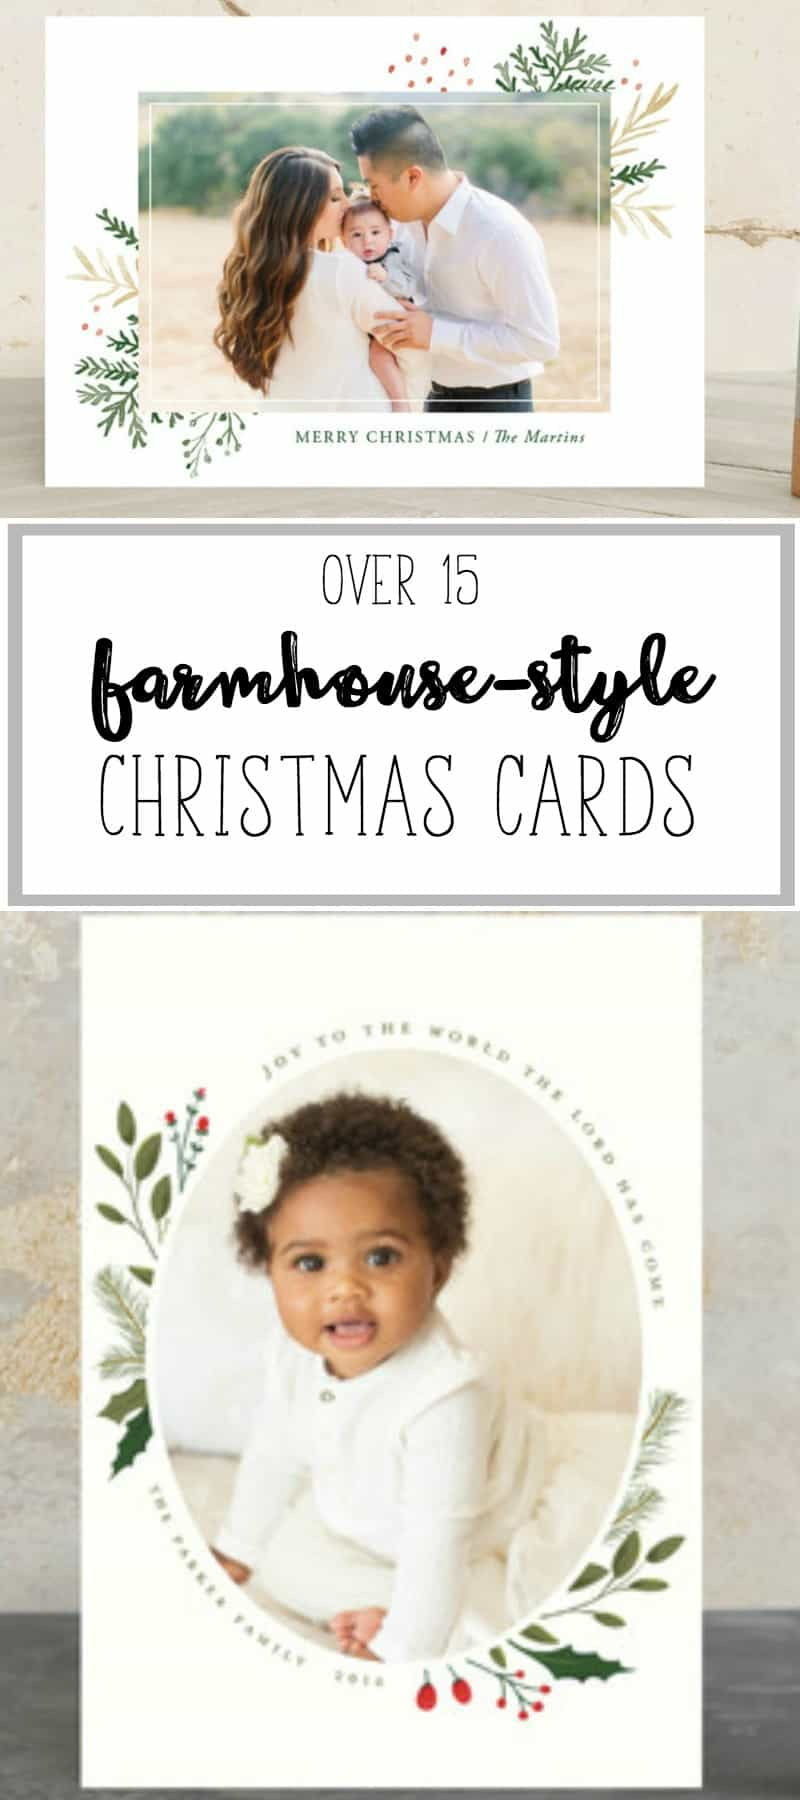 Farmhouse-style Christmas Cards and Holiday Cards and gifts. Farmhouse style. Christmas gifts. Rustic. Fixer upper.